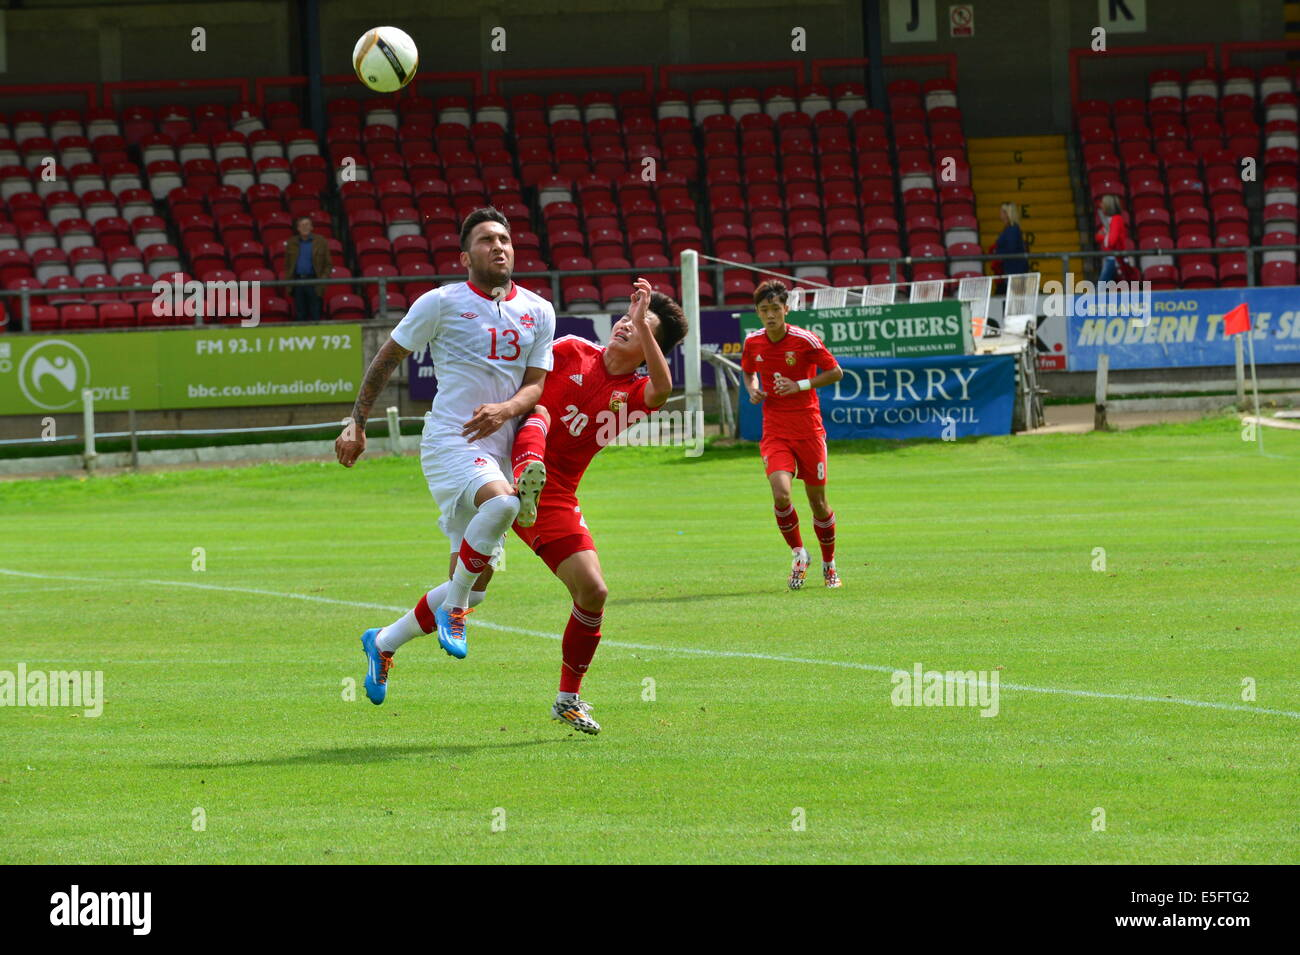 Derry, Londonderry, Northern Ireland. 30th July, 2014. Milk Cup Elite Section, Canada v China. Canada's Sadi - Stock Image